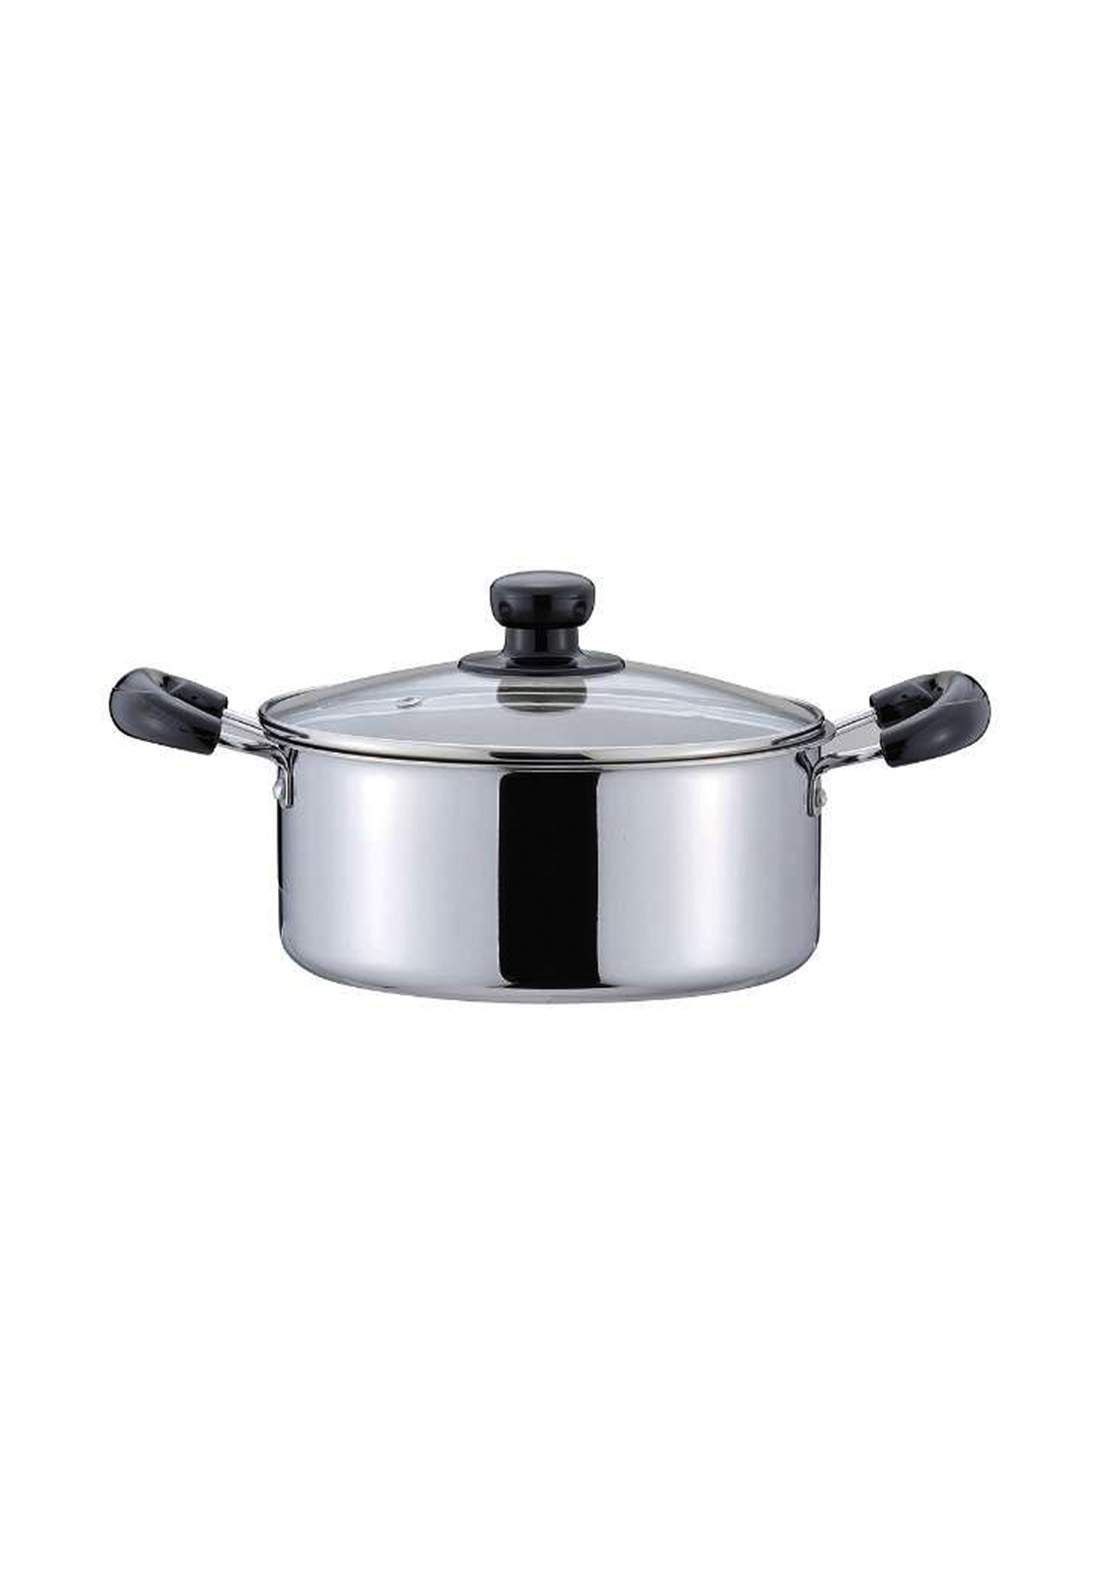 Pearl metal HB-5098 Alclad Aluminum 3-layer steel Two-handed pan with glass lid 20cm قدر مع غطاء زجاجي